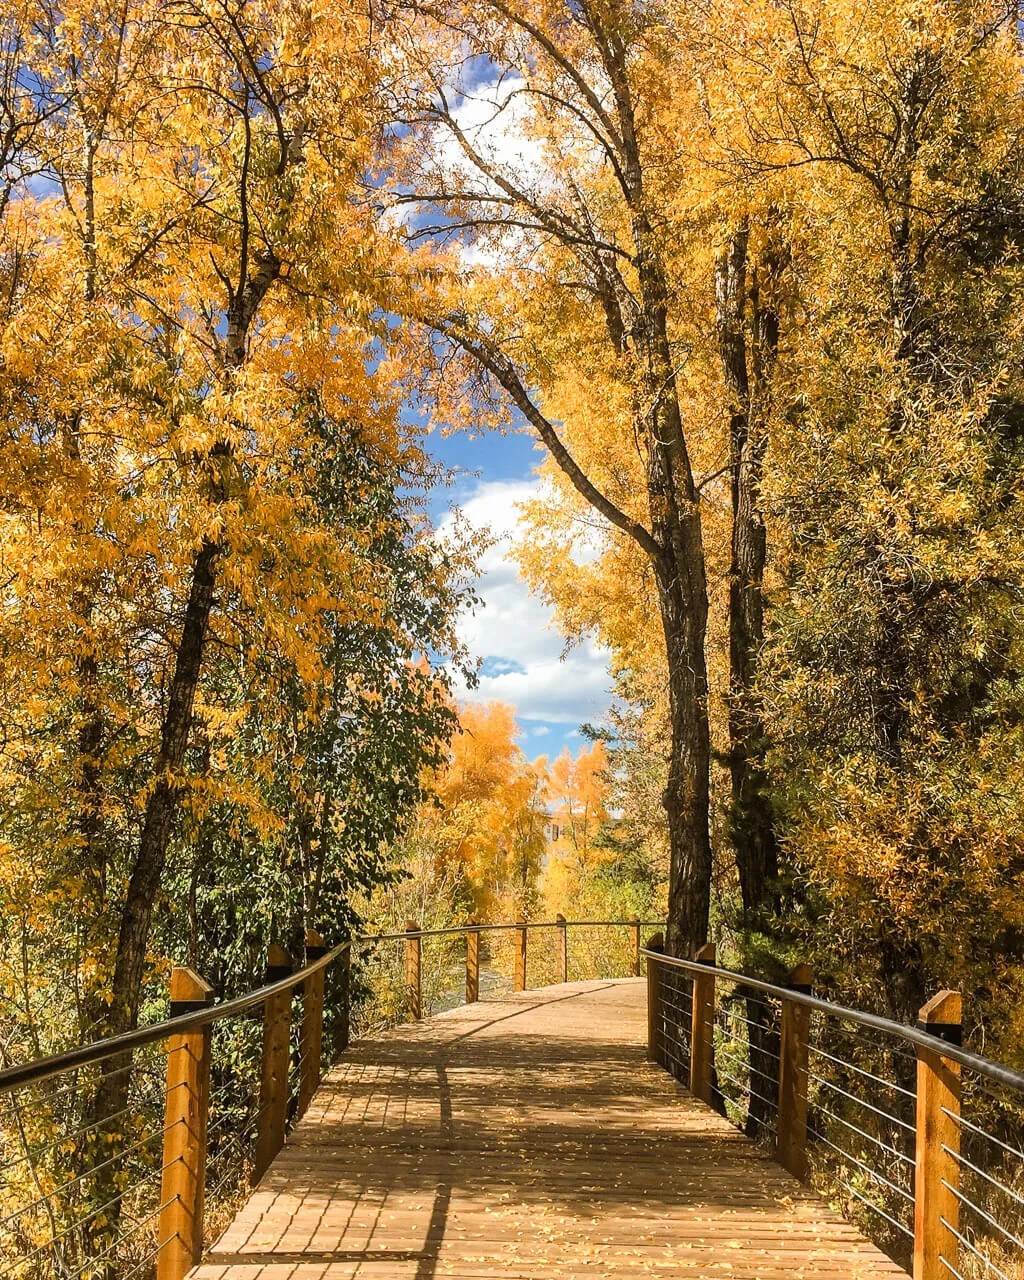 Exploring the Blue River Bike Path in Silverthorne, Things to Do